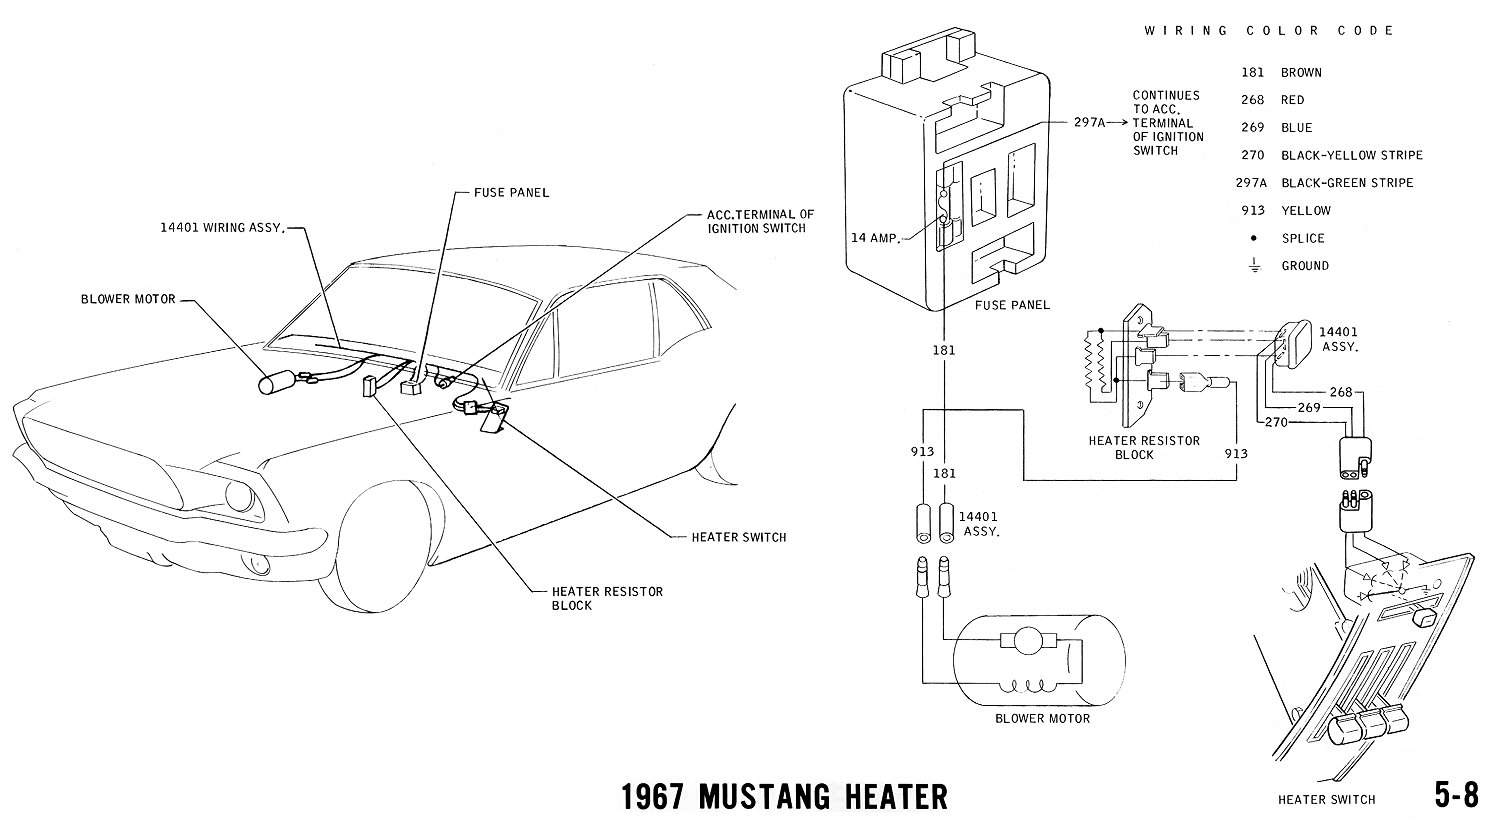 1967 Mustang Wiring And Vacuum Diagrams Average Joe Restoration 1968 F100 Fuse Box Pictorial Schematic